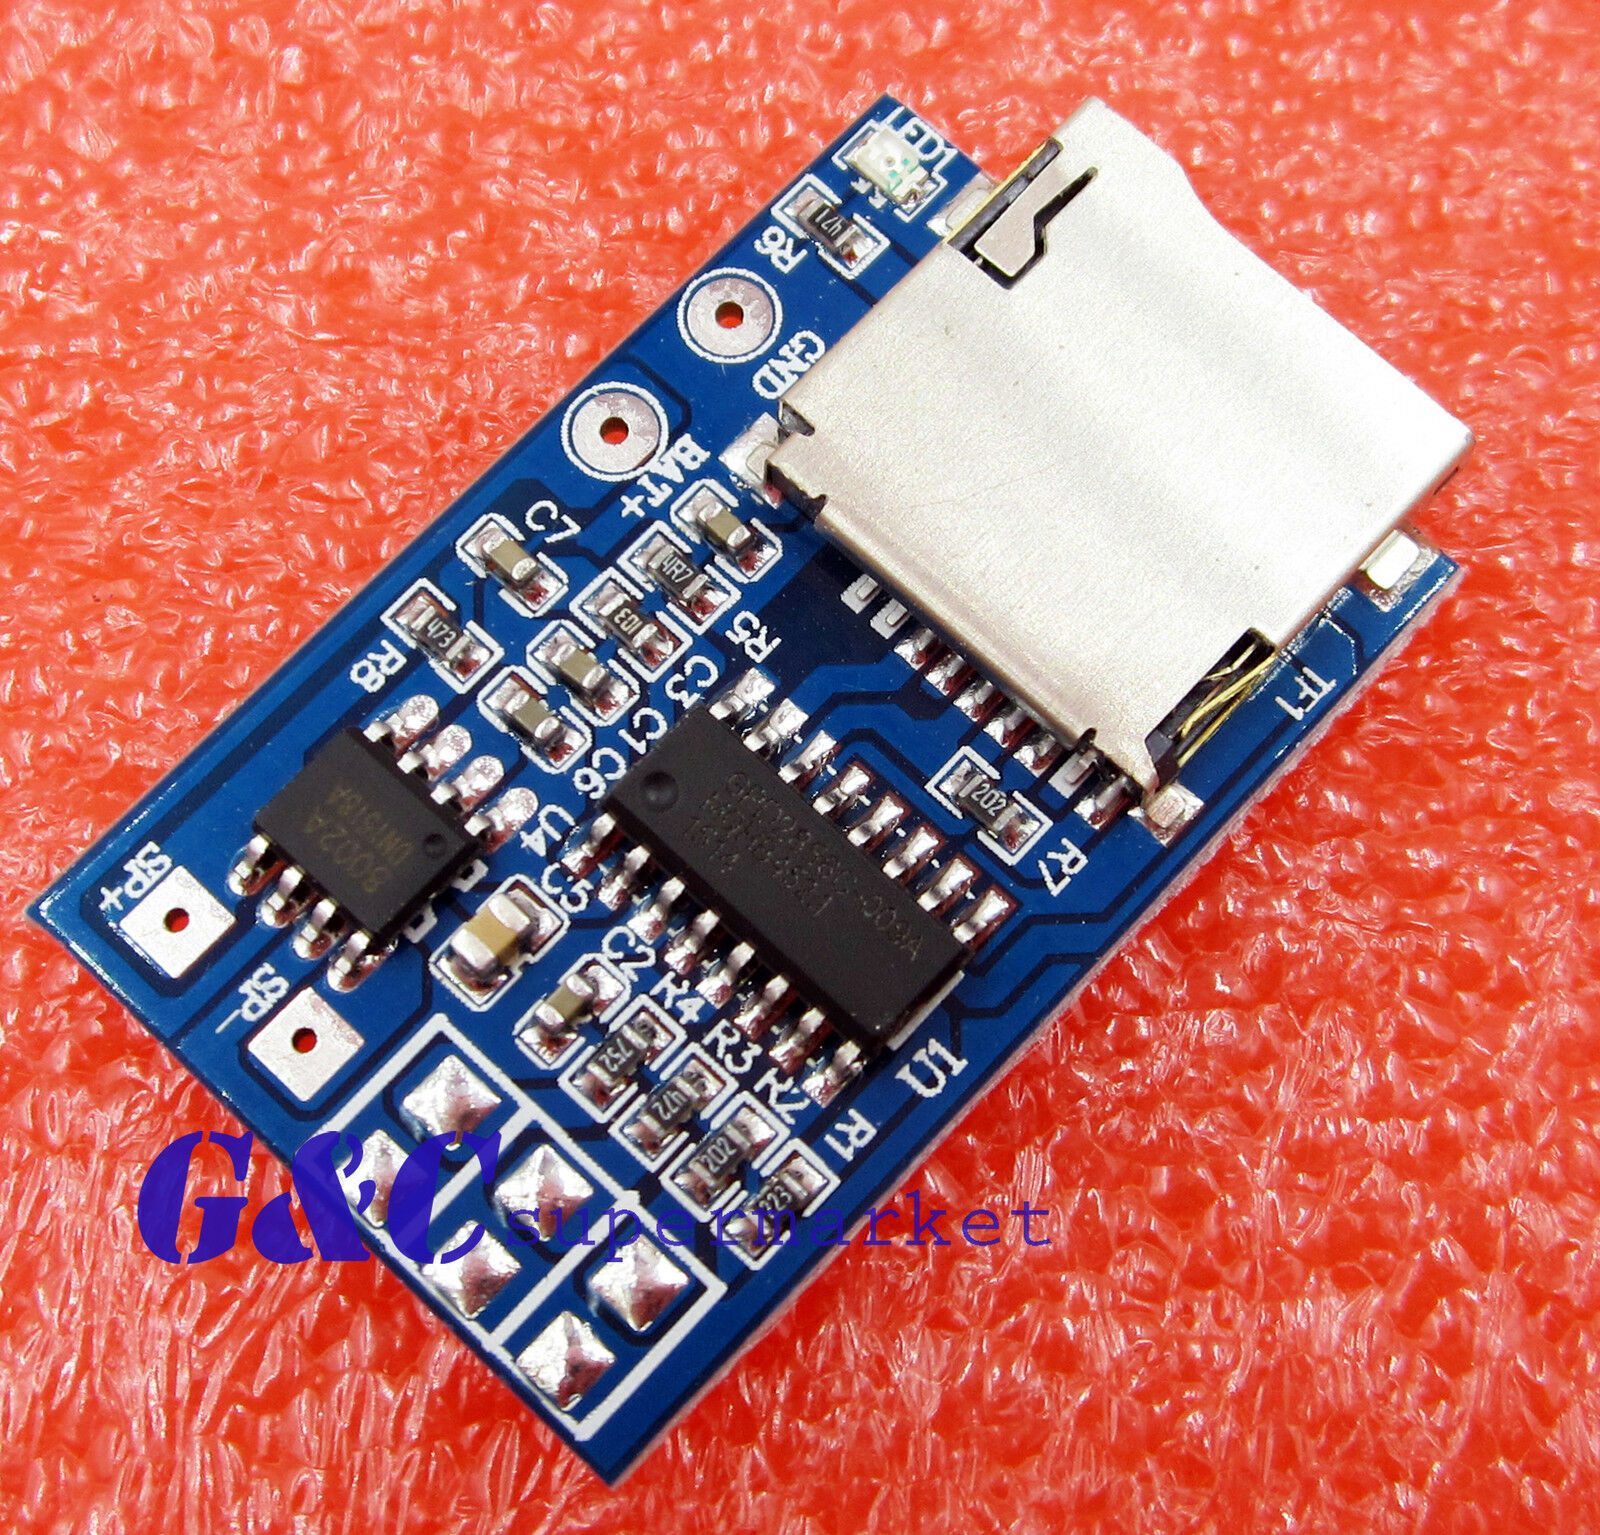 Gpd2856a Tf Card Mp3 Decoder Board 2w Amplifier Module For Arduino Antietching Pcb Circuit Ink Marker Pen Diy 1 Of See More